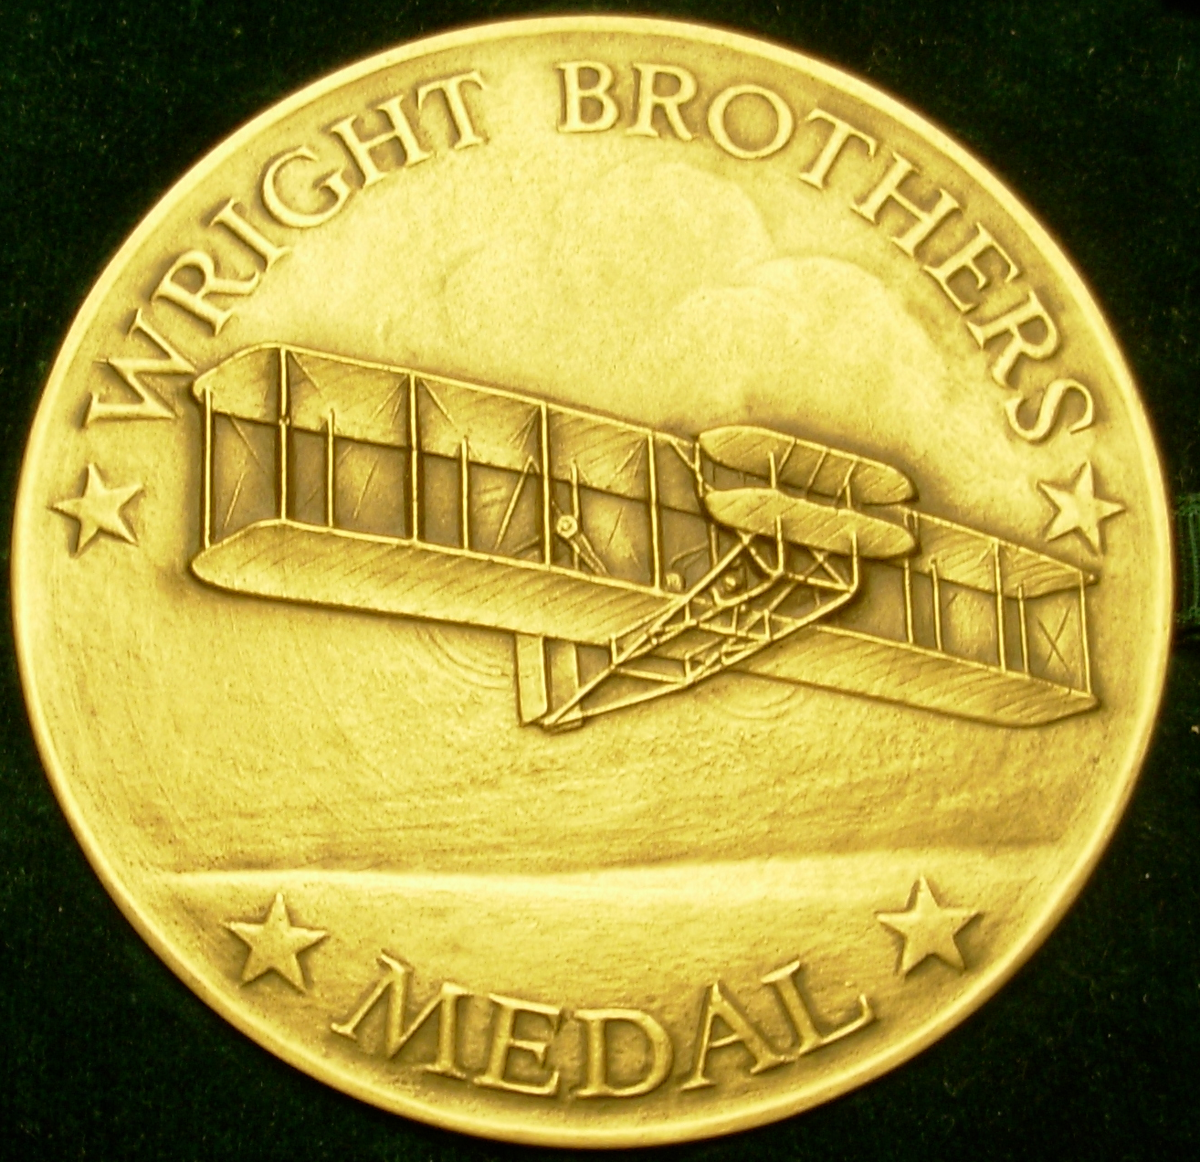 Wright Brothers Medal - Wikipedia